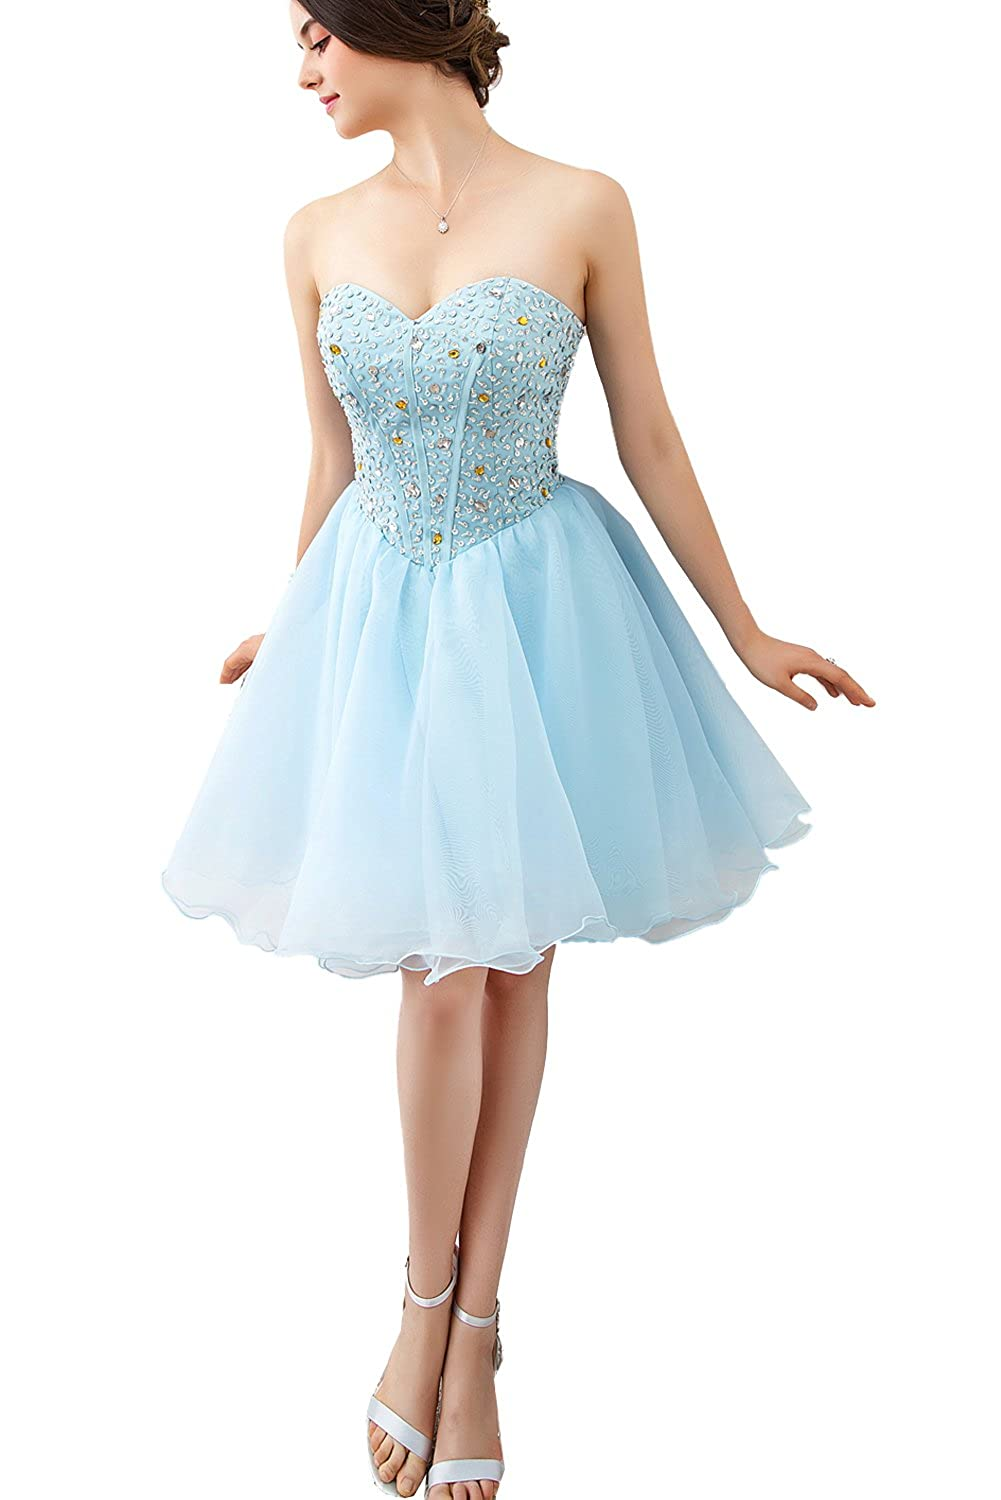 Baby bluee FASHION DRESS 2017 Women's Short Evening Prom Party Cocktail Dress